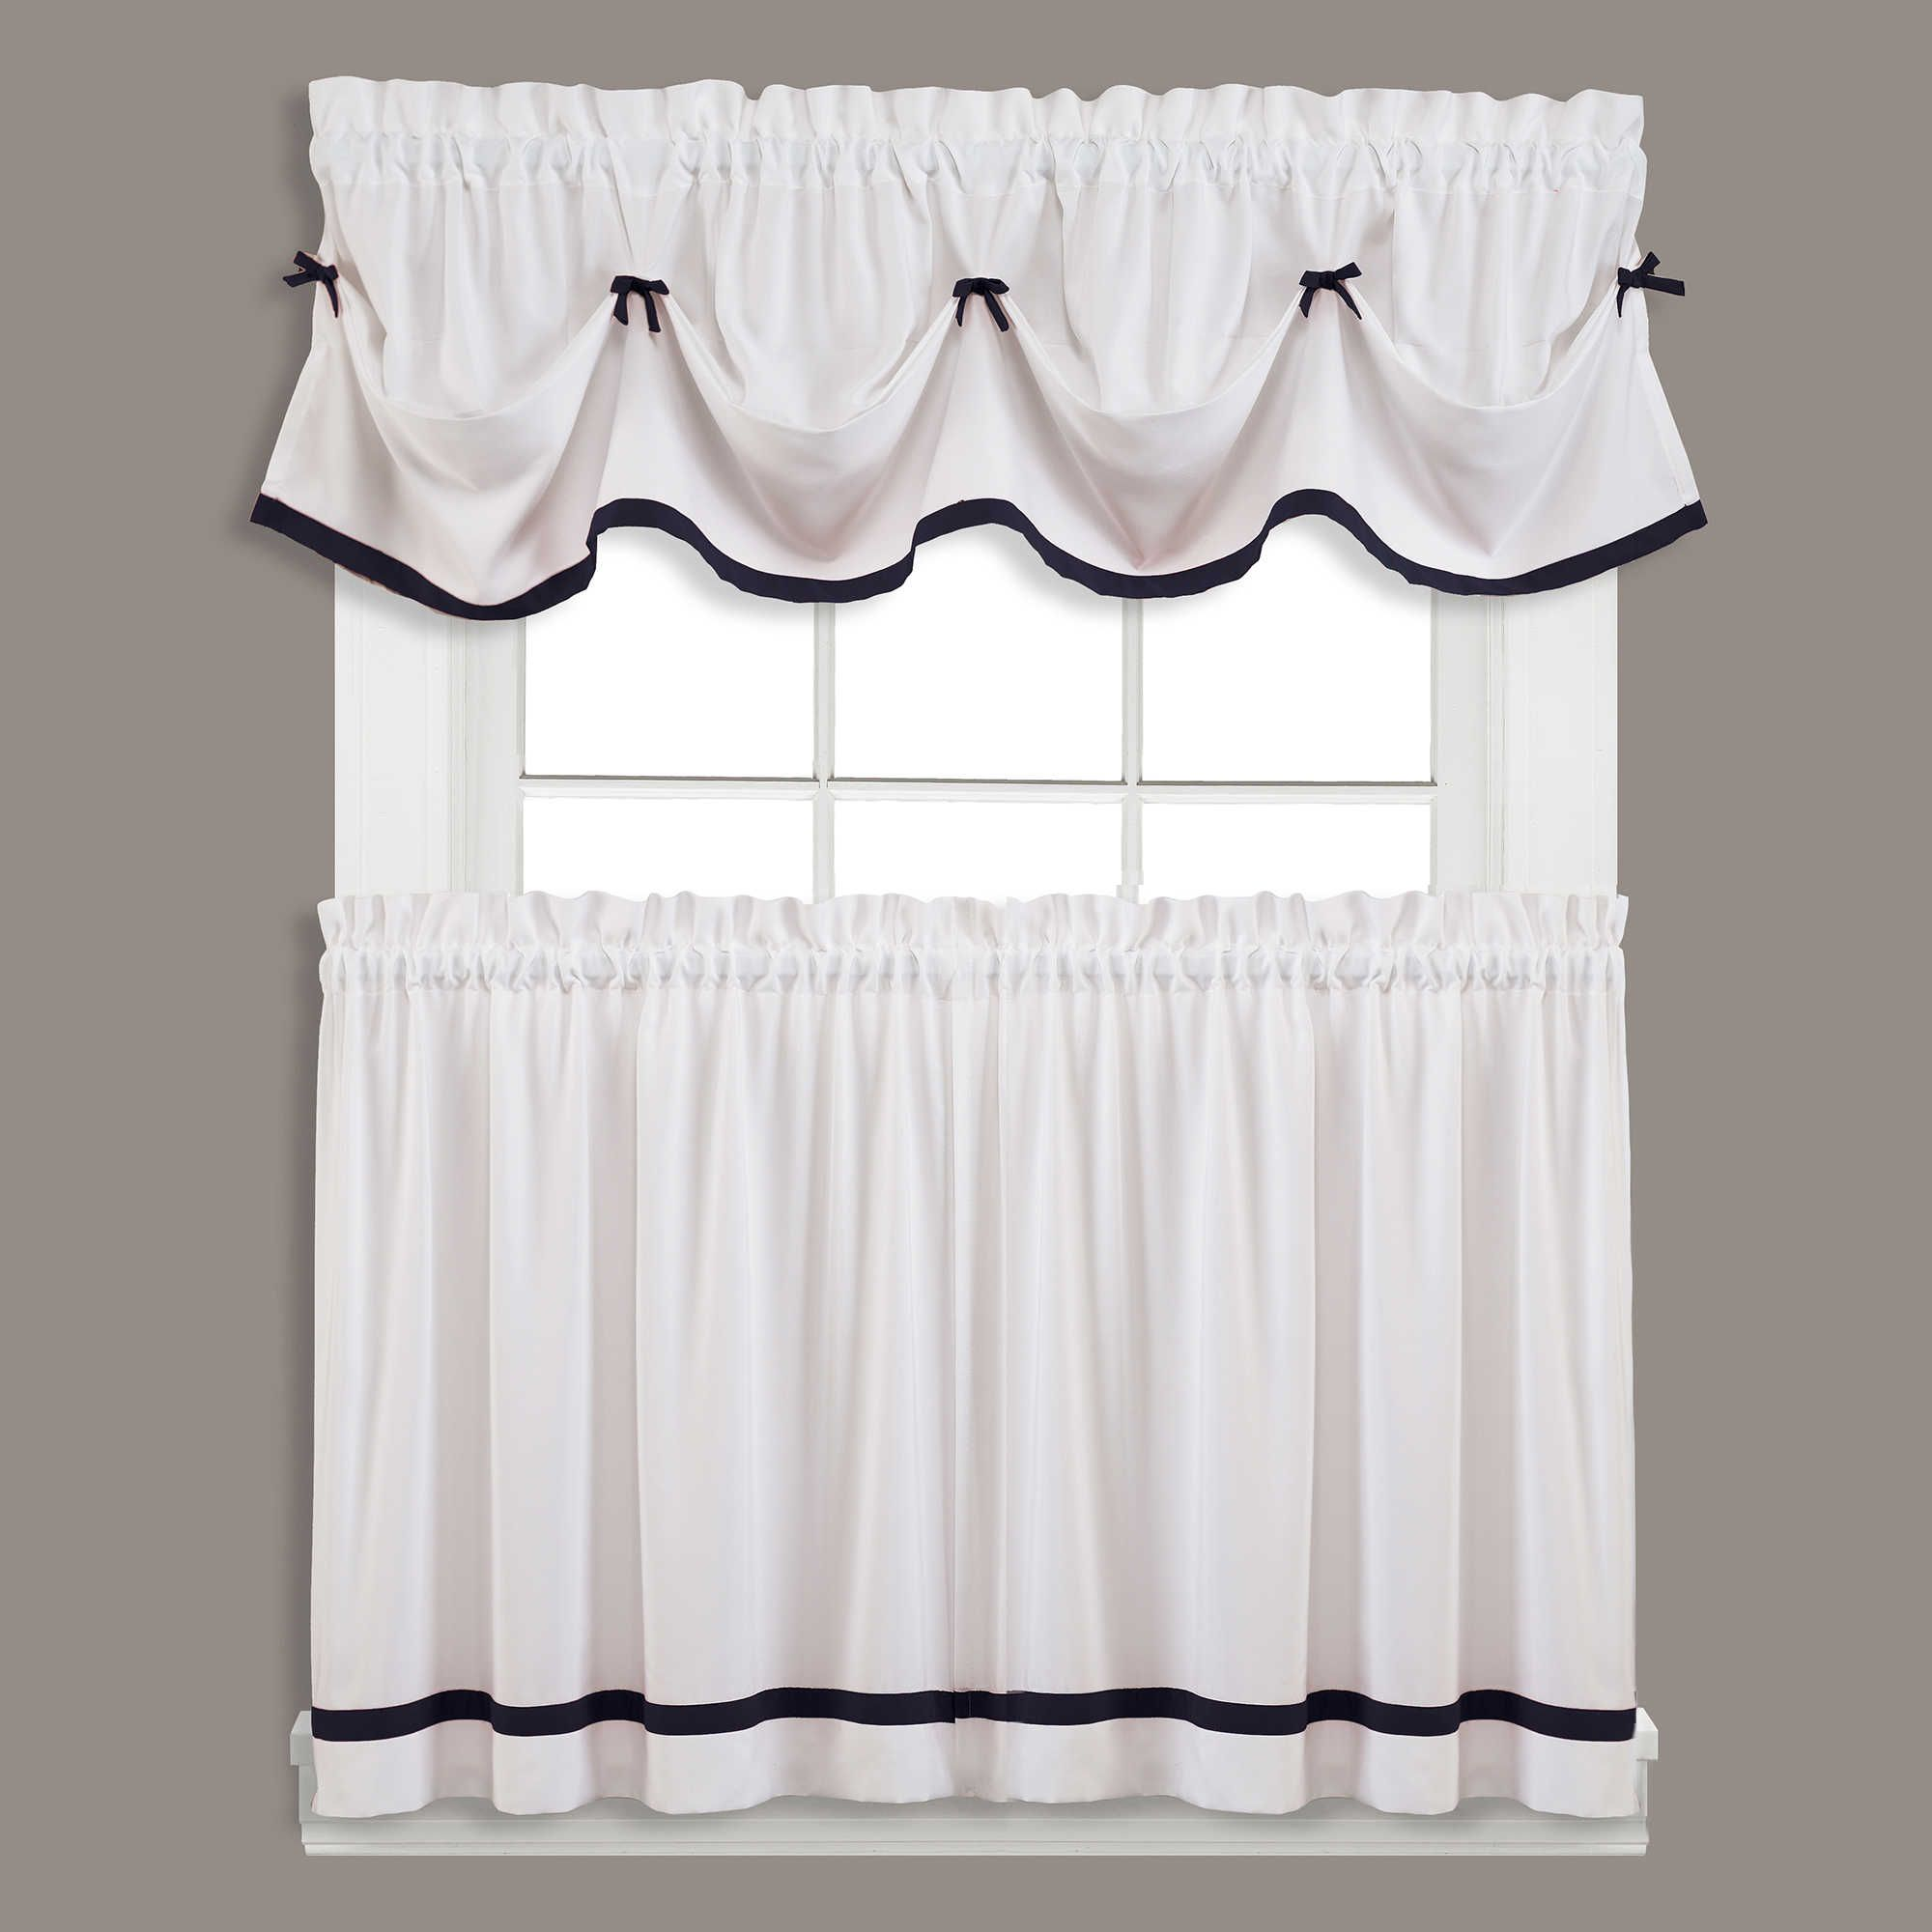 Kate Window Curtain Panel And Valance White Kitchen Curtains Valance Black White Curtains